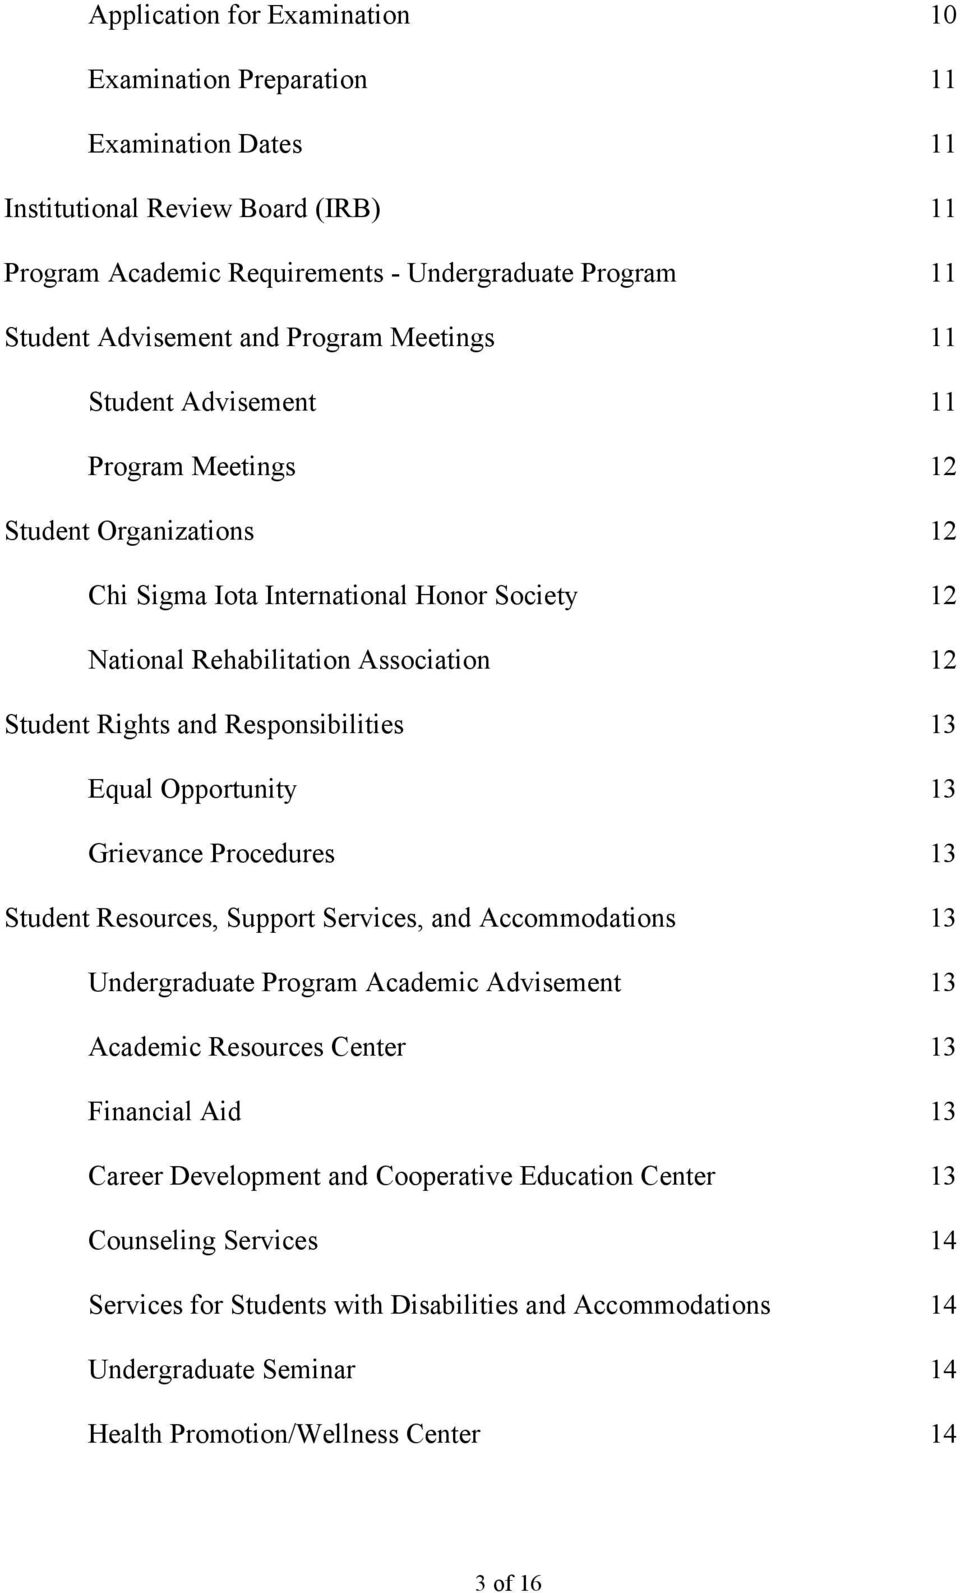 Responsibilities 13 Equal Opportunity 13 Grievance Procedures 13 Student Resources, Support Services, and Accommodations 13 Undergraduate Program Academic Advisement 13 Academic Resources Center 13